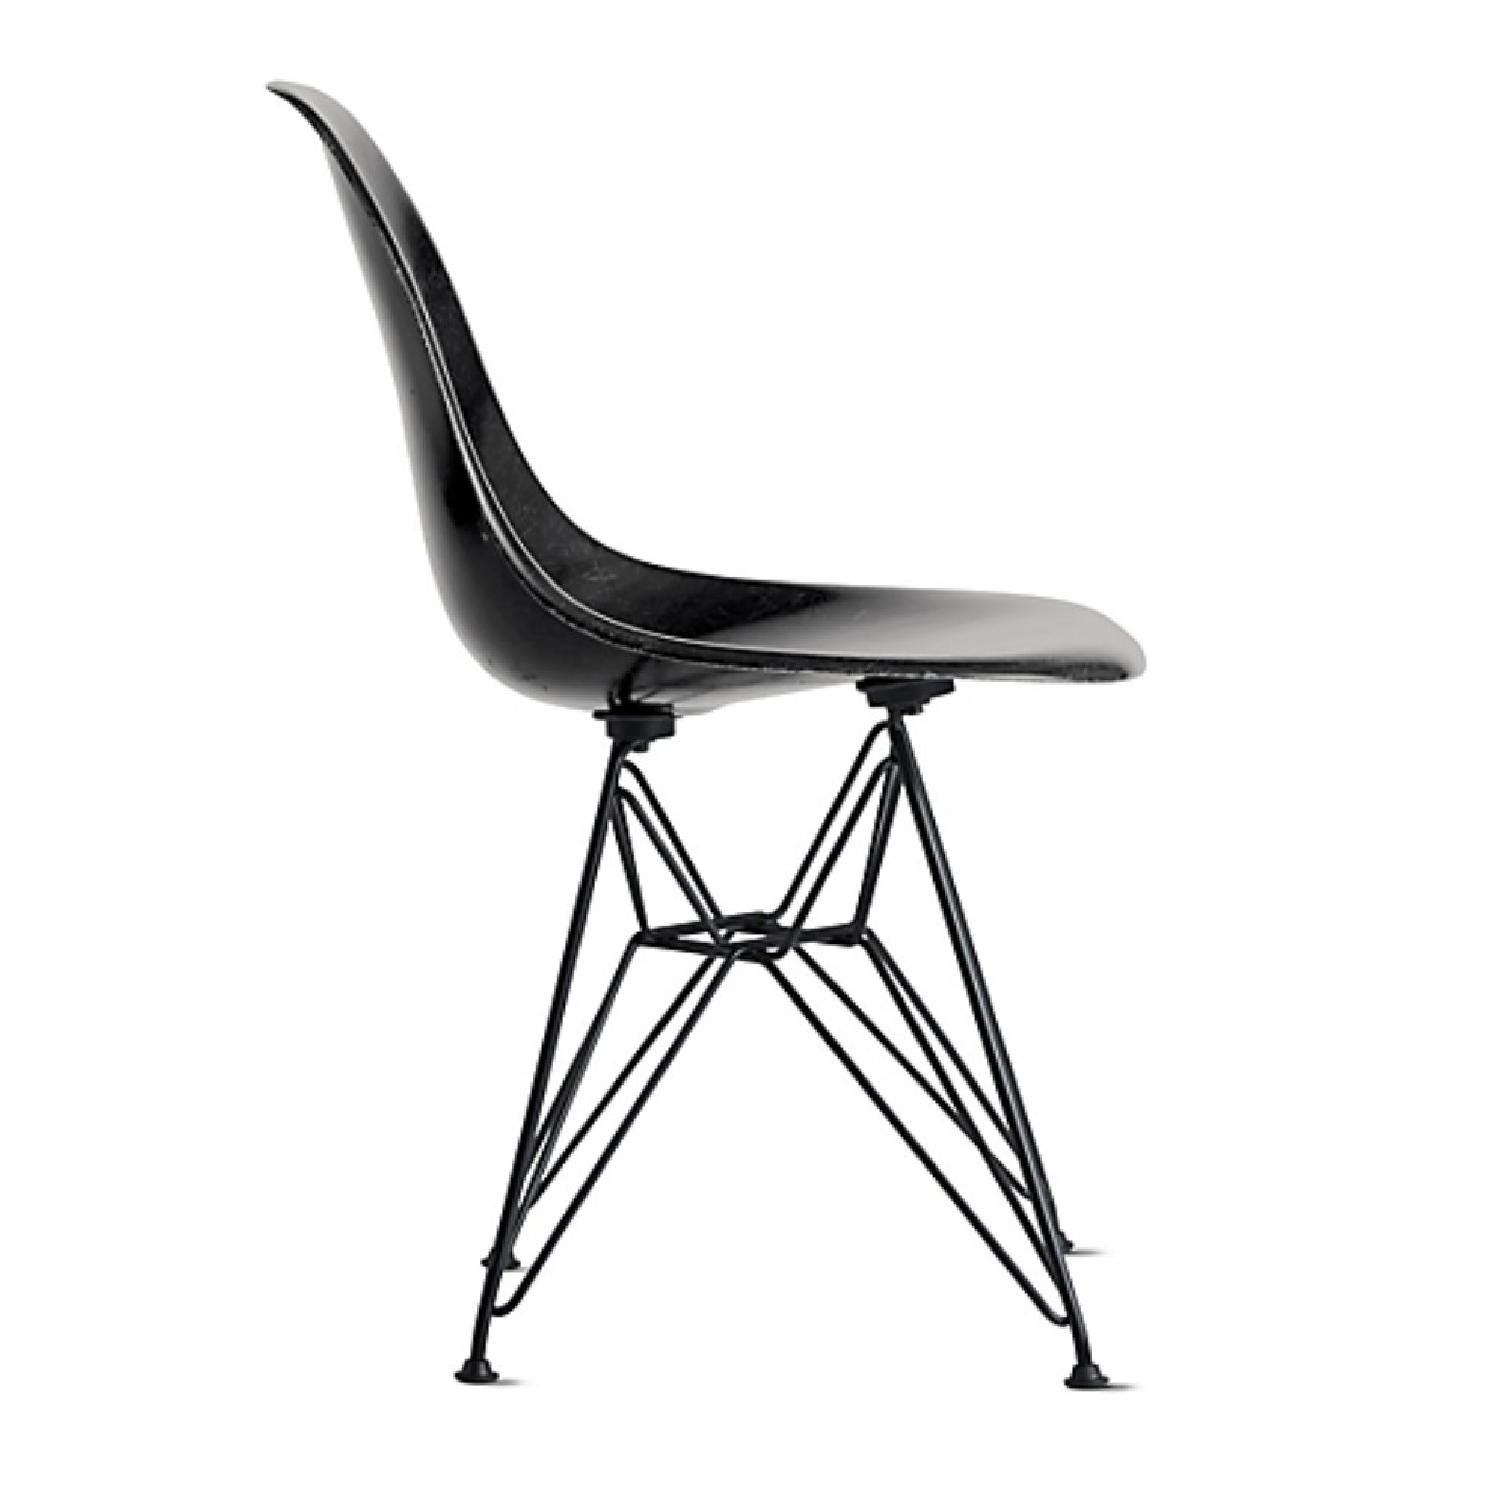 Eames Molded Fiberglass Wire-Base Side Chair in Navy - image-1